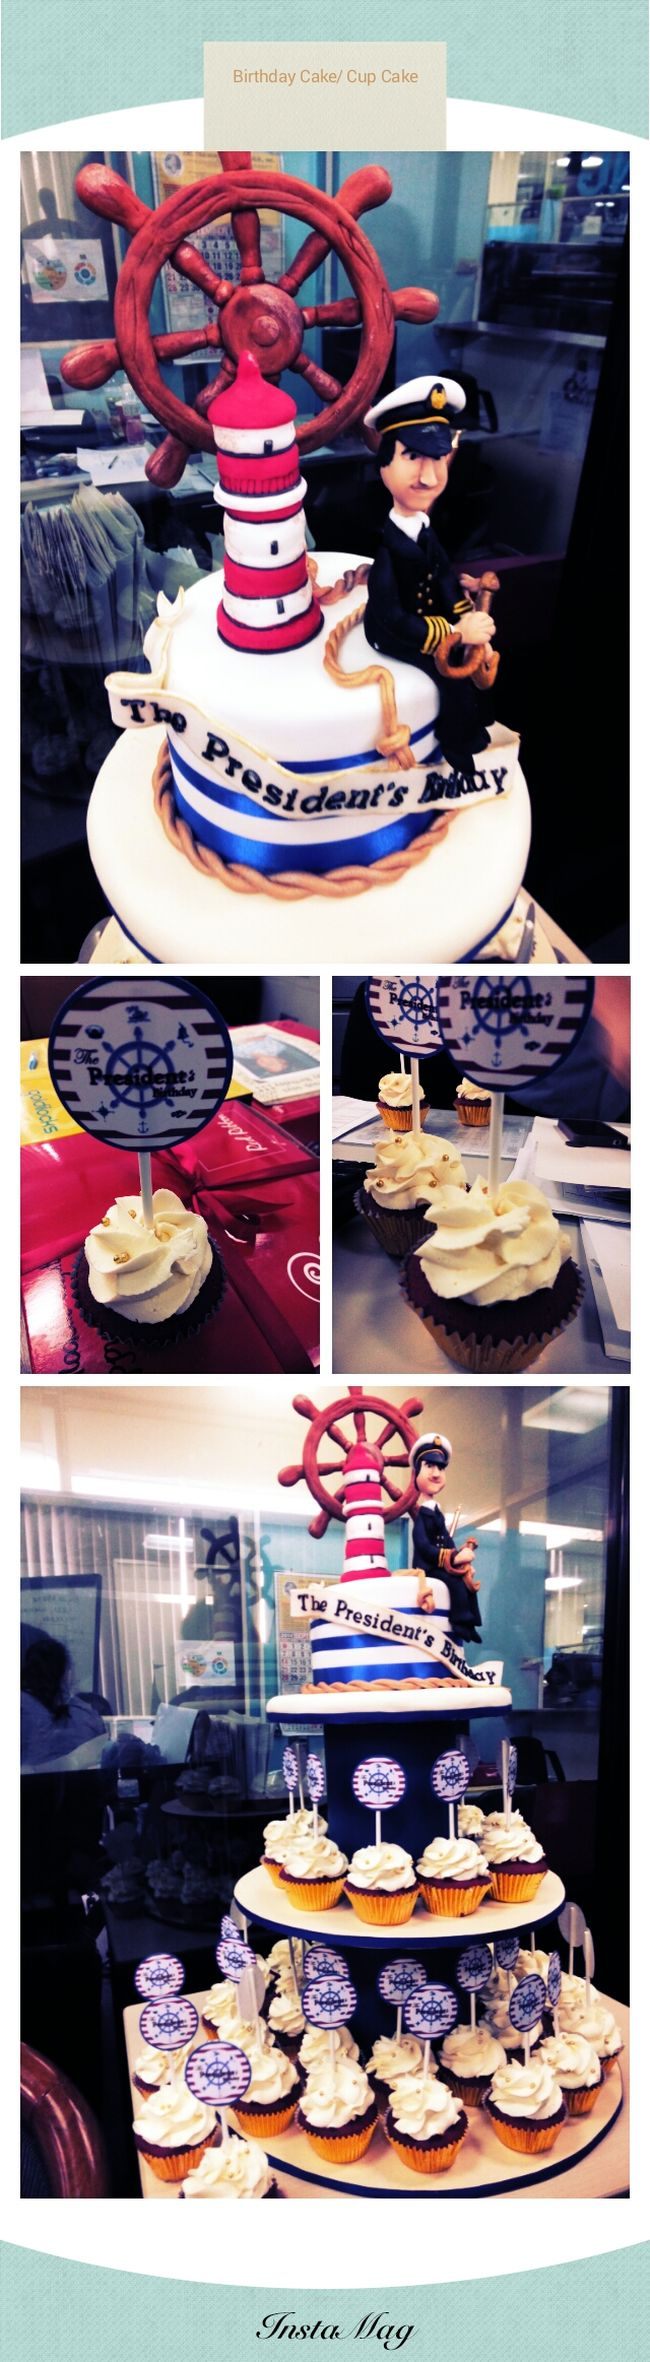 Celebrating our boss birthday.. ↖(^ω^)↗↖(^ω^)↗ Eat Eat And Eat!!! Having Fun :) Cup Cakes Happy Birthday! #latepost